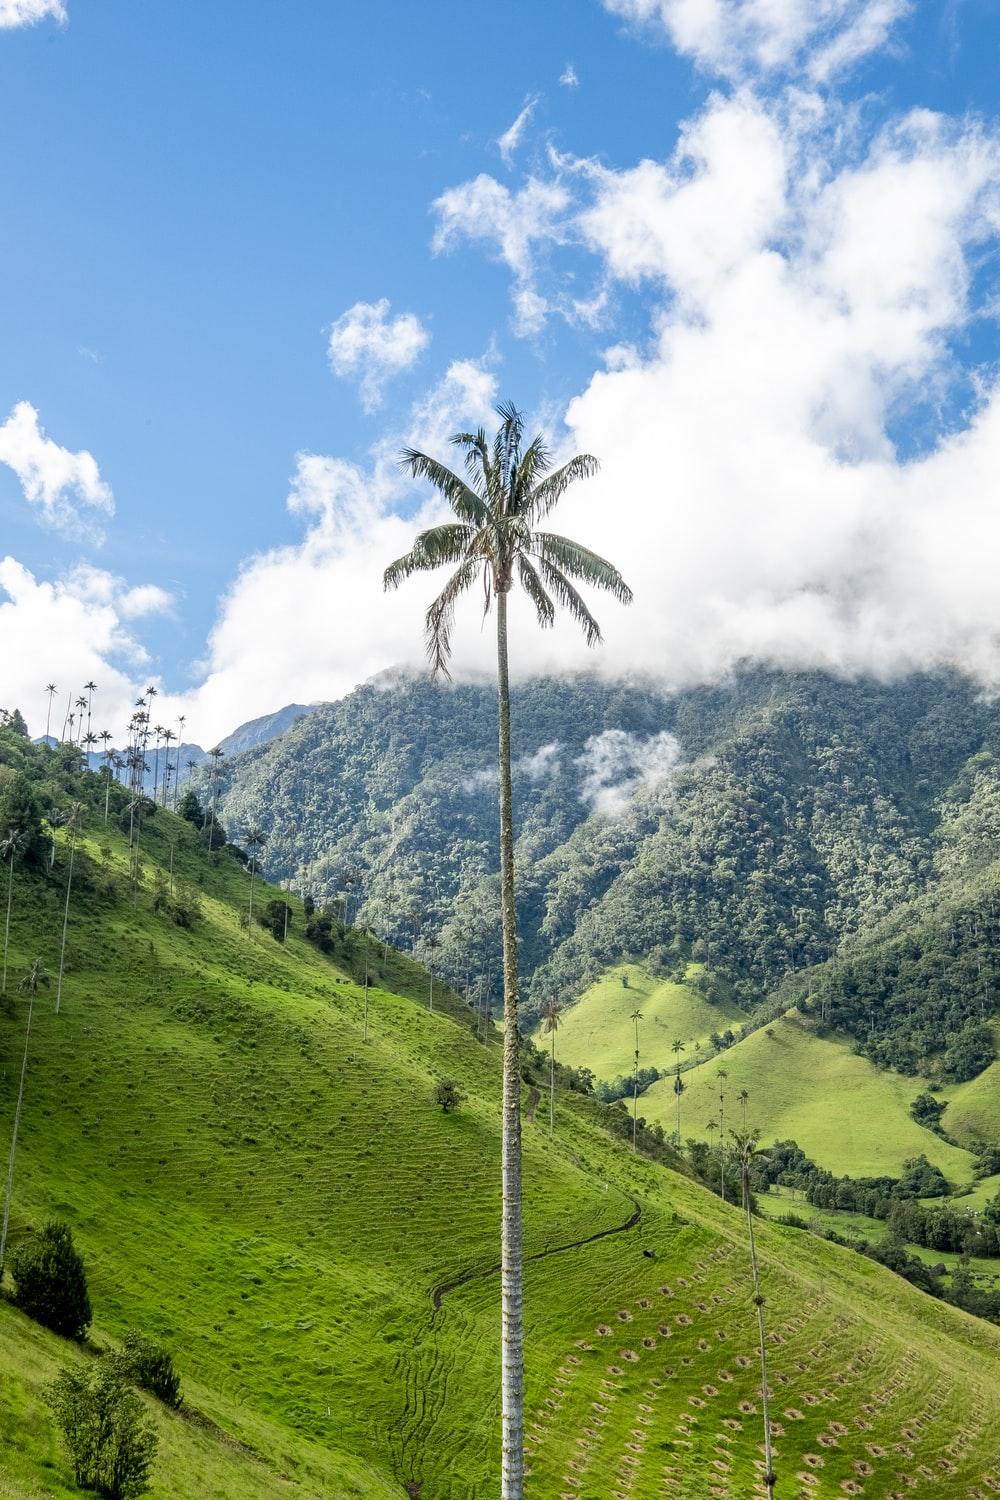 green palm tree between grass field under cloudy sky at daytime